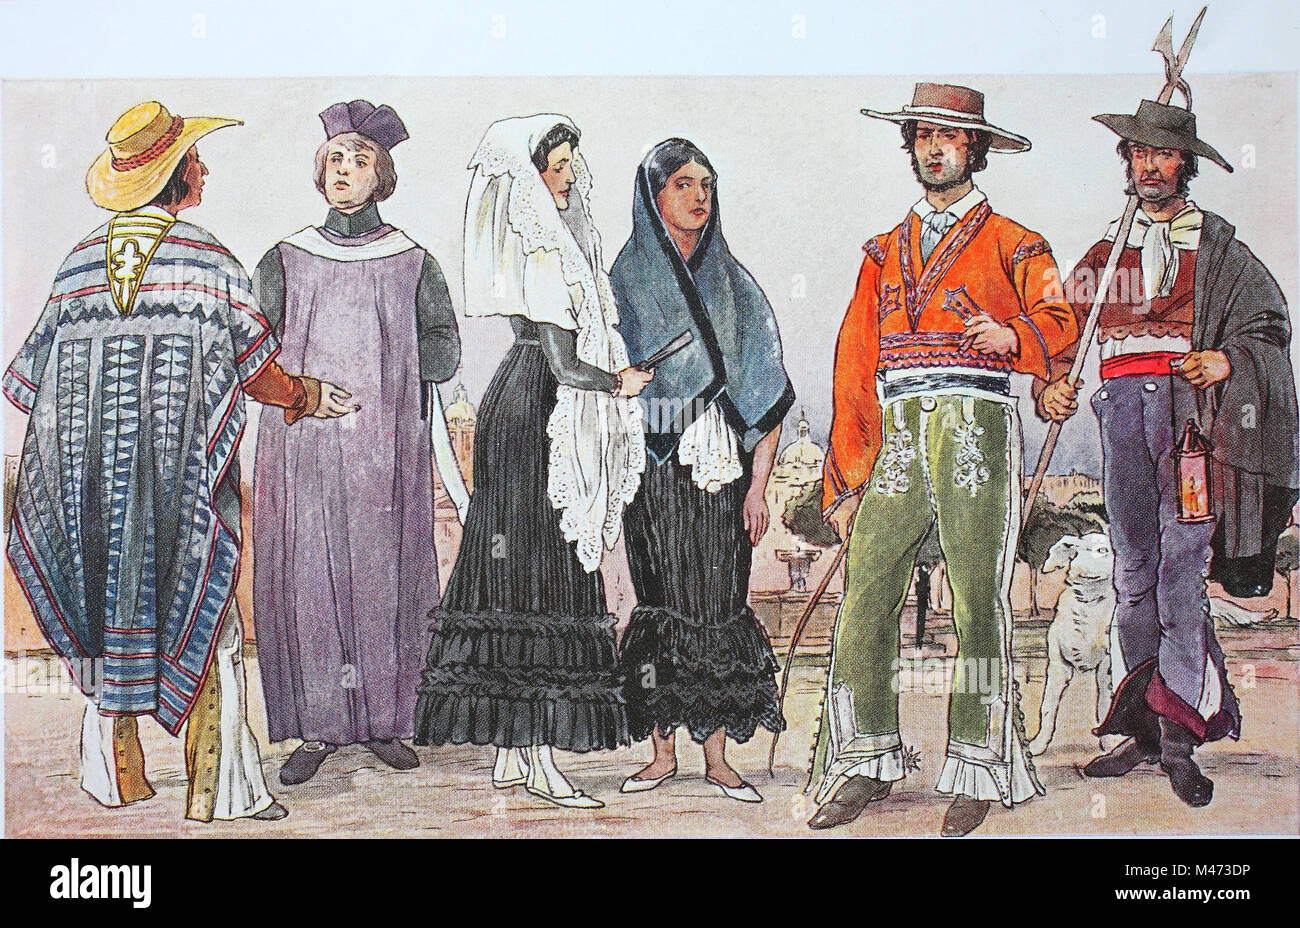 194b490a4a9a Clothing fashion in central america mexico early century jpg 1300x928 Vintage  mexican fashion